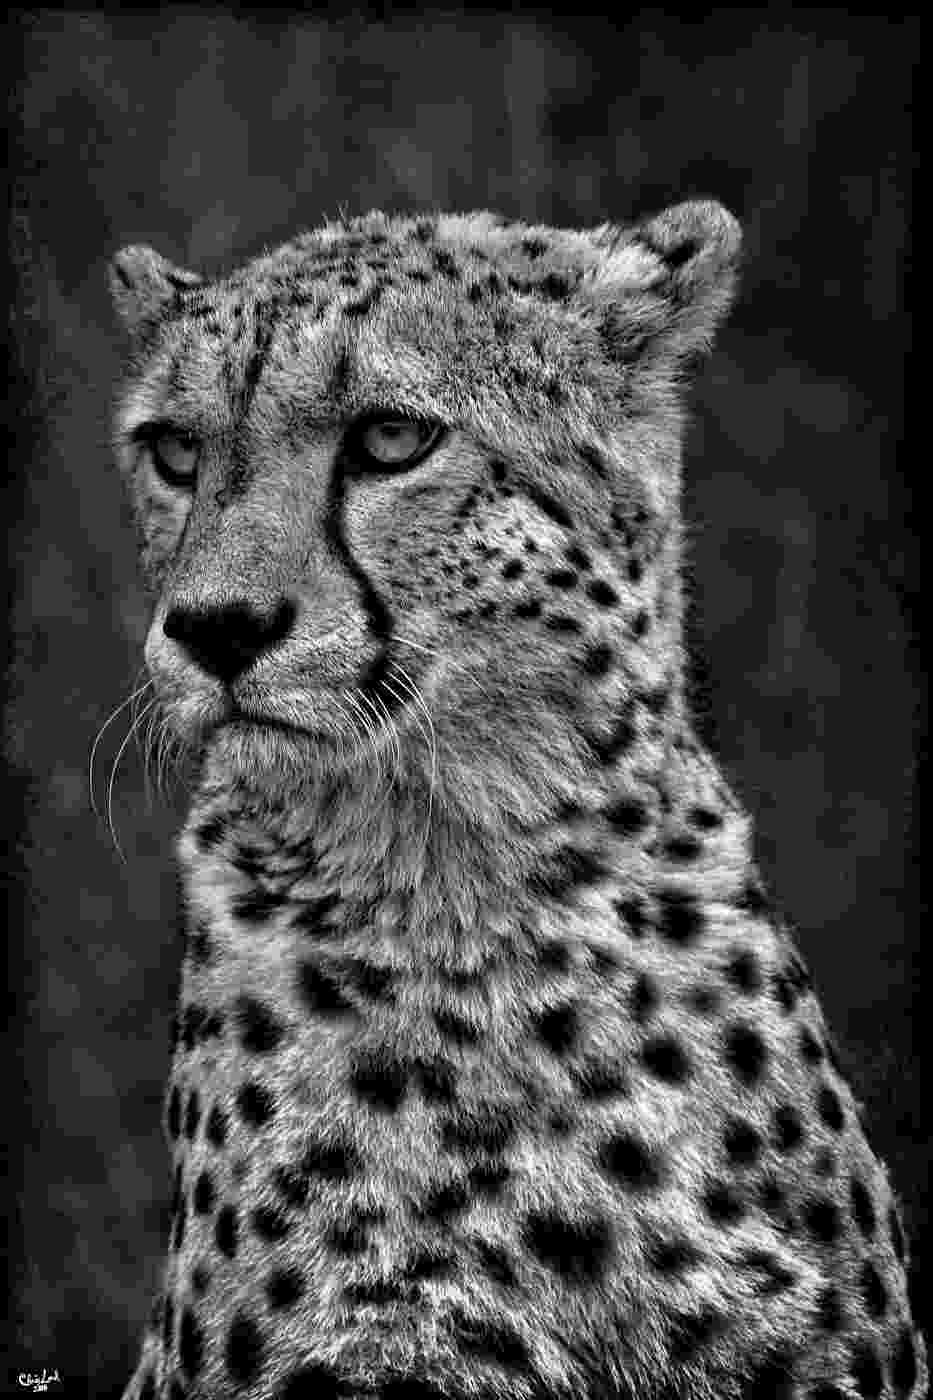 picture of a cheetah portrait of cheetah in black and white stock photo image of a picture cheetah